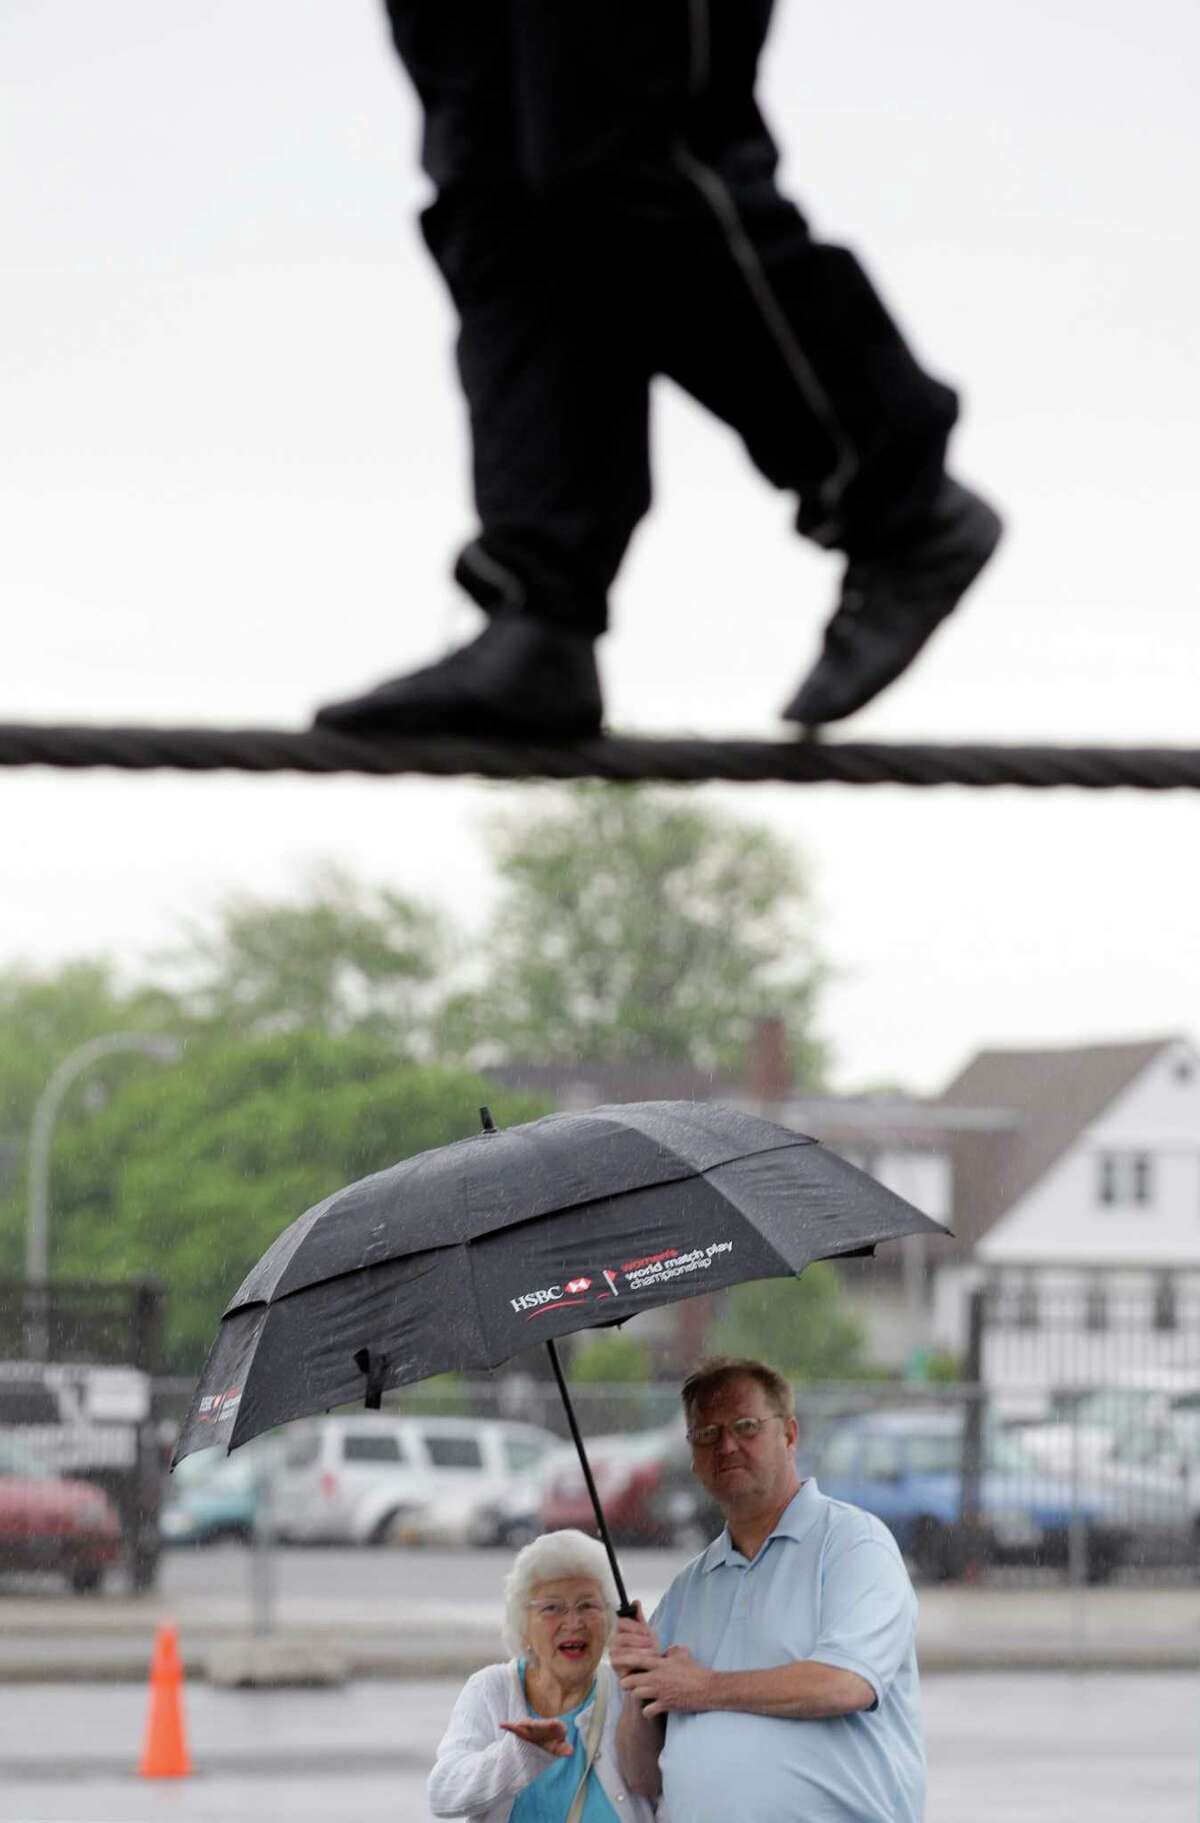 Nik Wallenda performs a walk on a tightrope in the rain as people watch during training for his walk over Niagara Falls in Niagara Falls, N.Y., Wednesday, May 16, 2012.